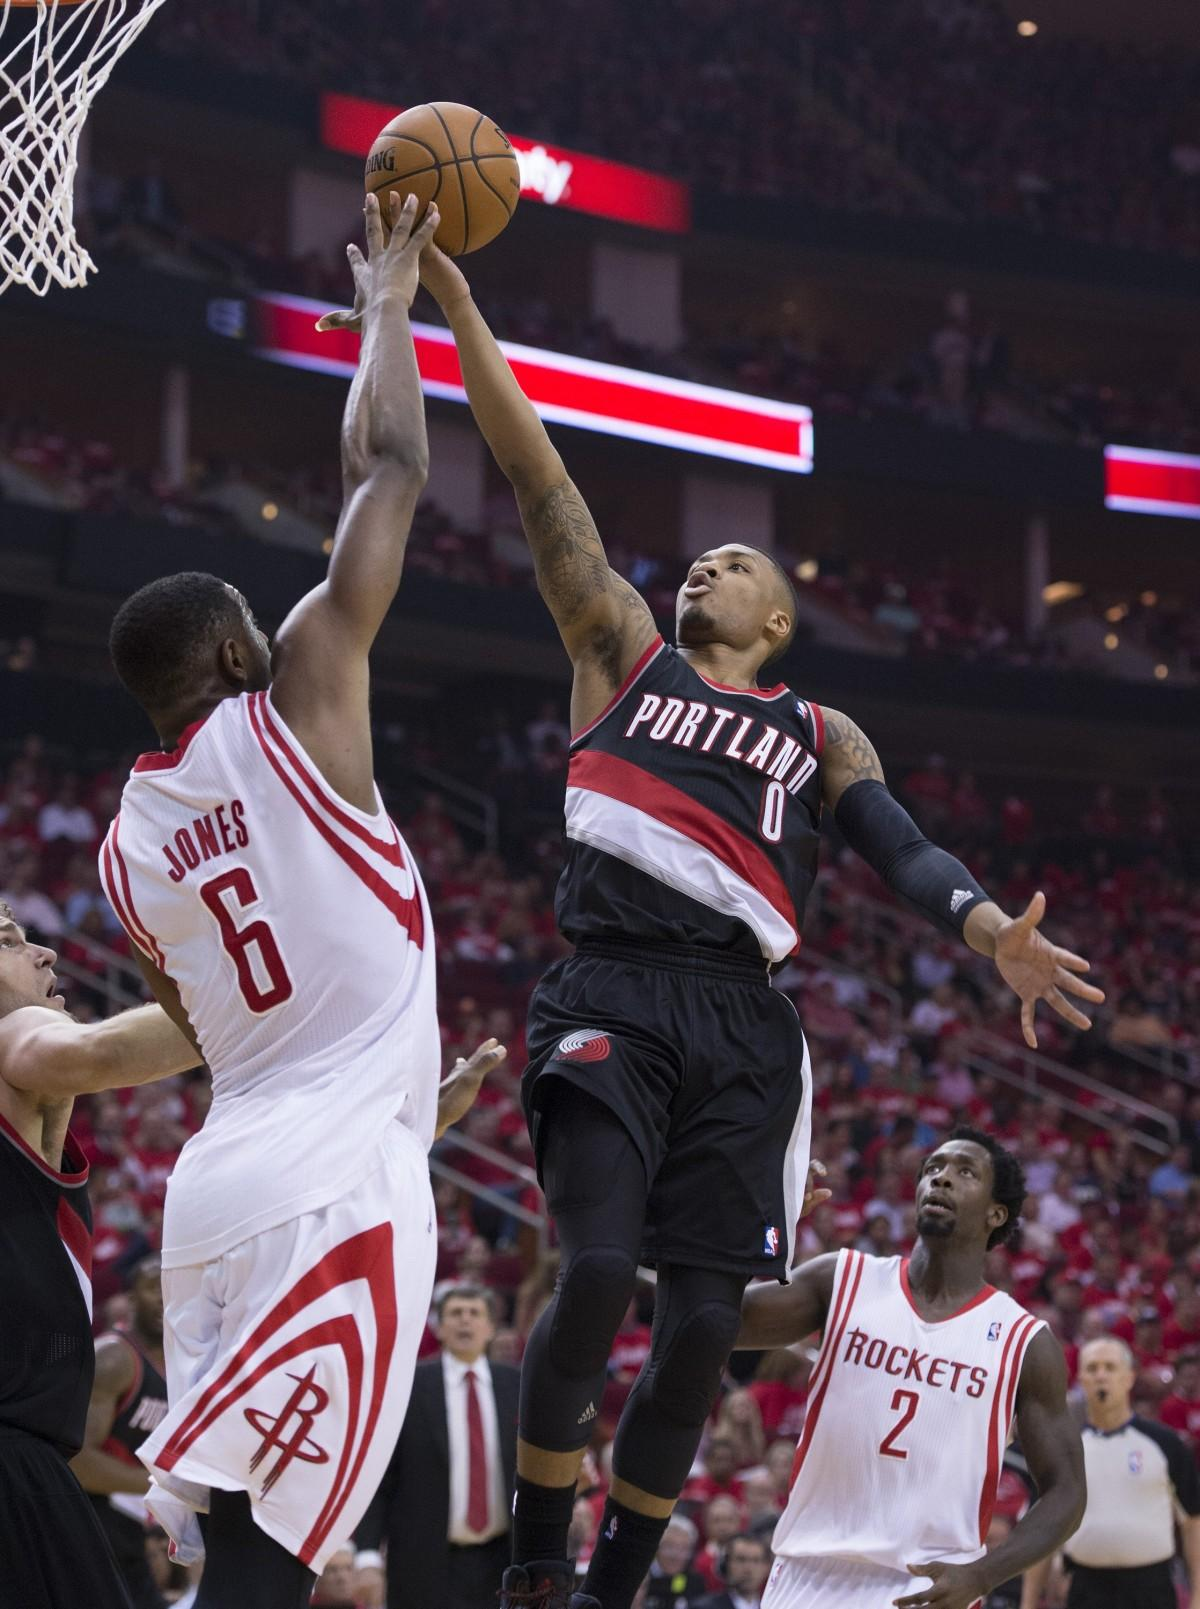 The Portland Trail Blazers' Damian Lillard won't be seen at the NBA All-Stars game. Kenny and Eric talk about this and other All-Star snubs. Photo courtesy of Tribune News Services.